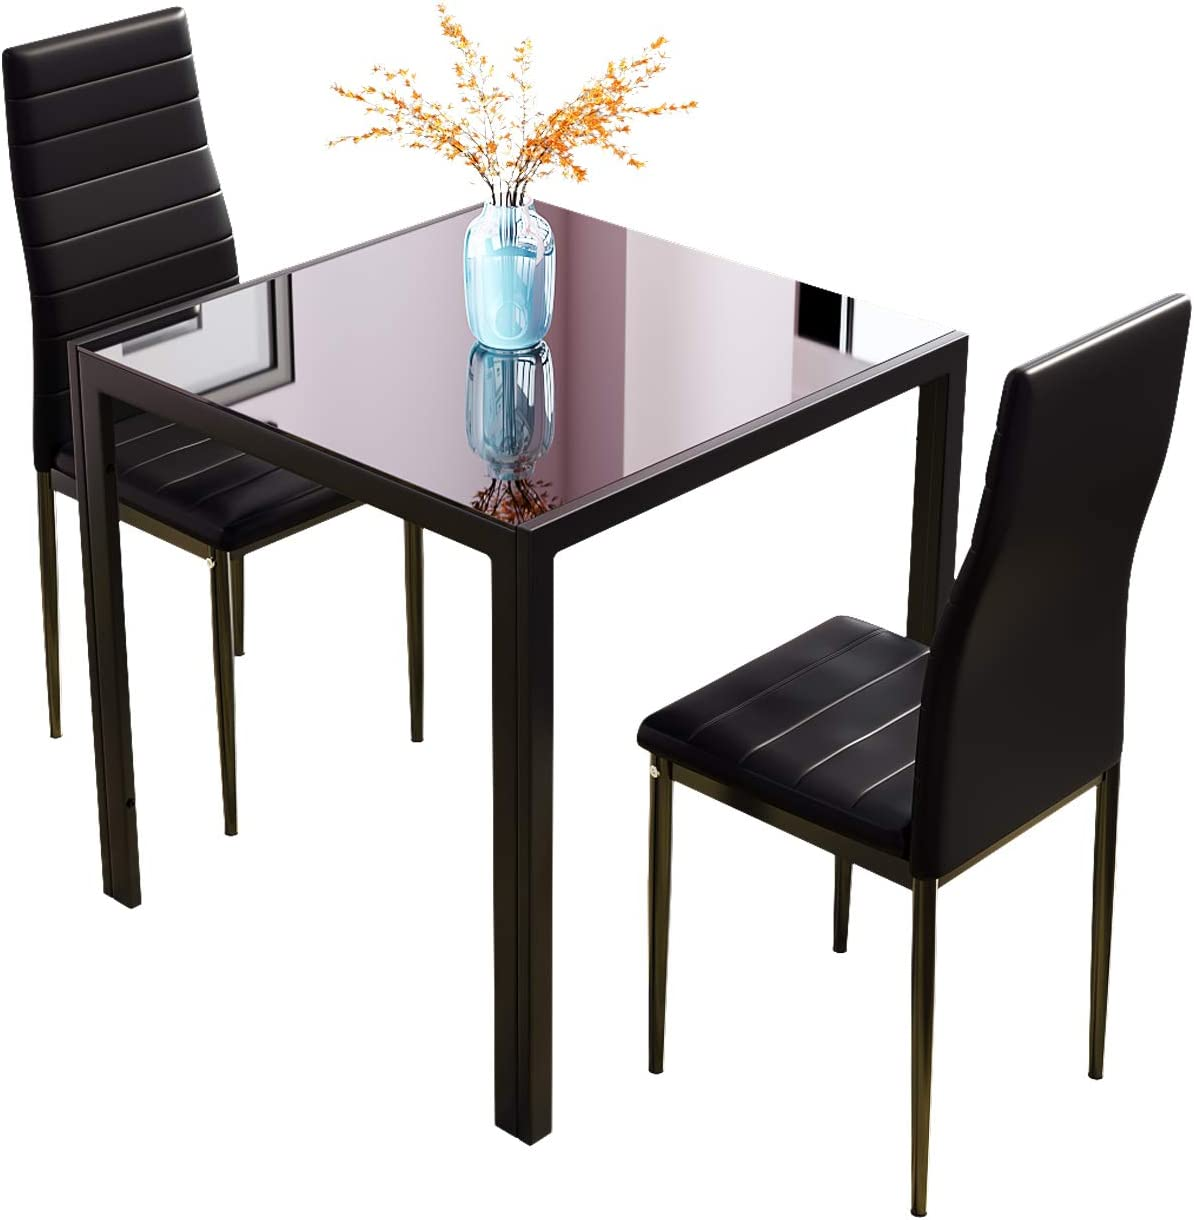 Small Dining Table Set For 4, J Dining Table And Chairs Glass Square Small Kitchen Table With High Back Chairs Black 3 Amazon Co Uk Kitchen Home